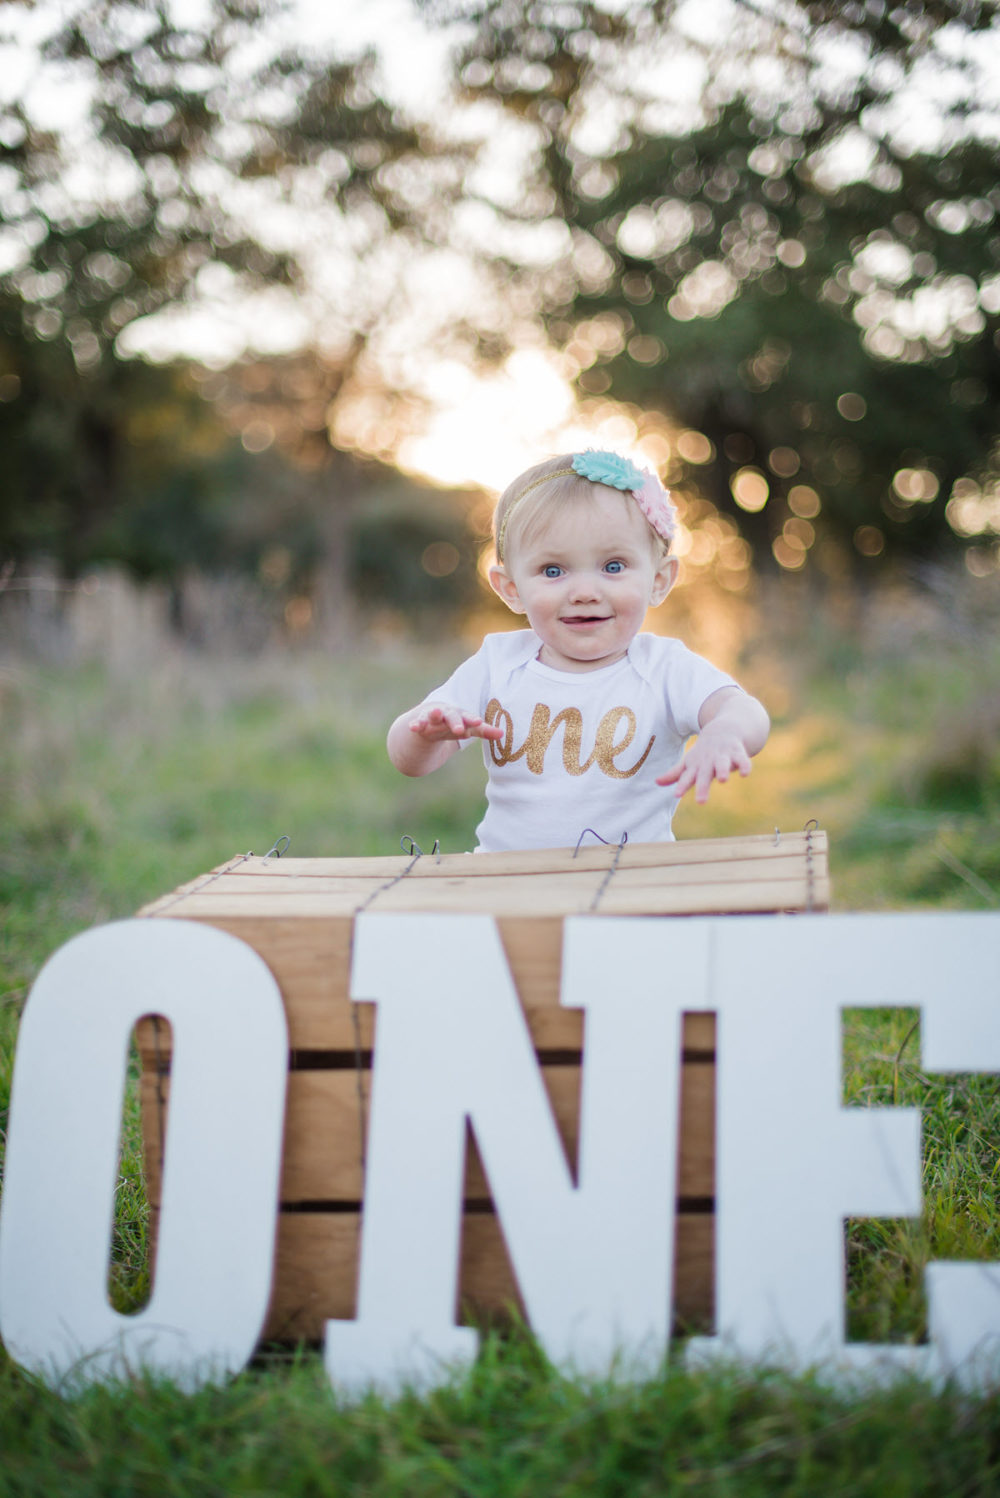 Carly_One_Year_Old_Outdoor_Photos_New_Braunfels_TX-002